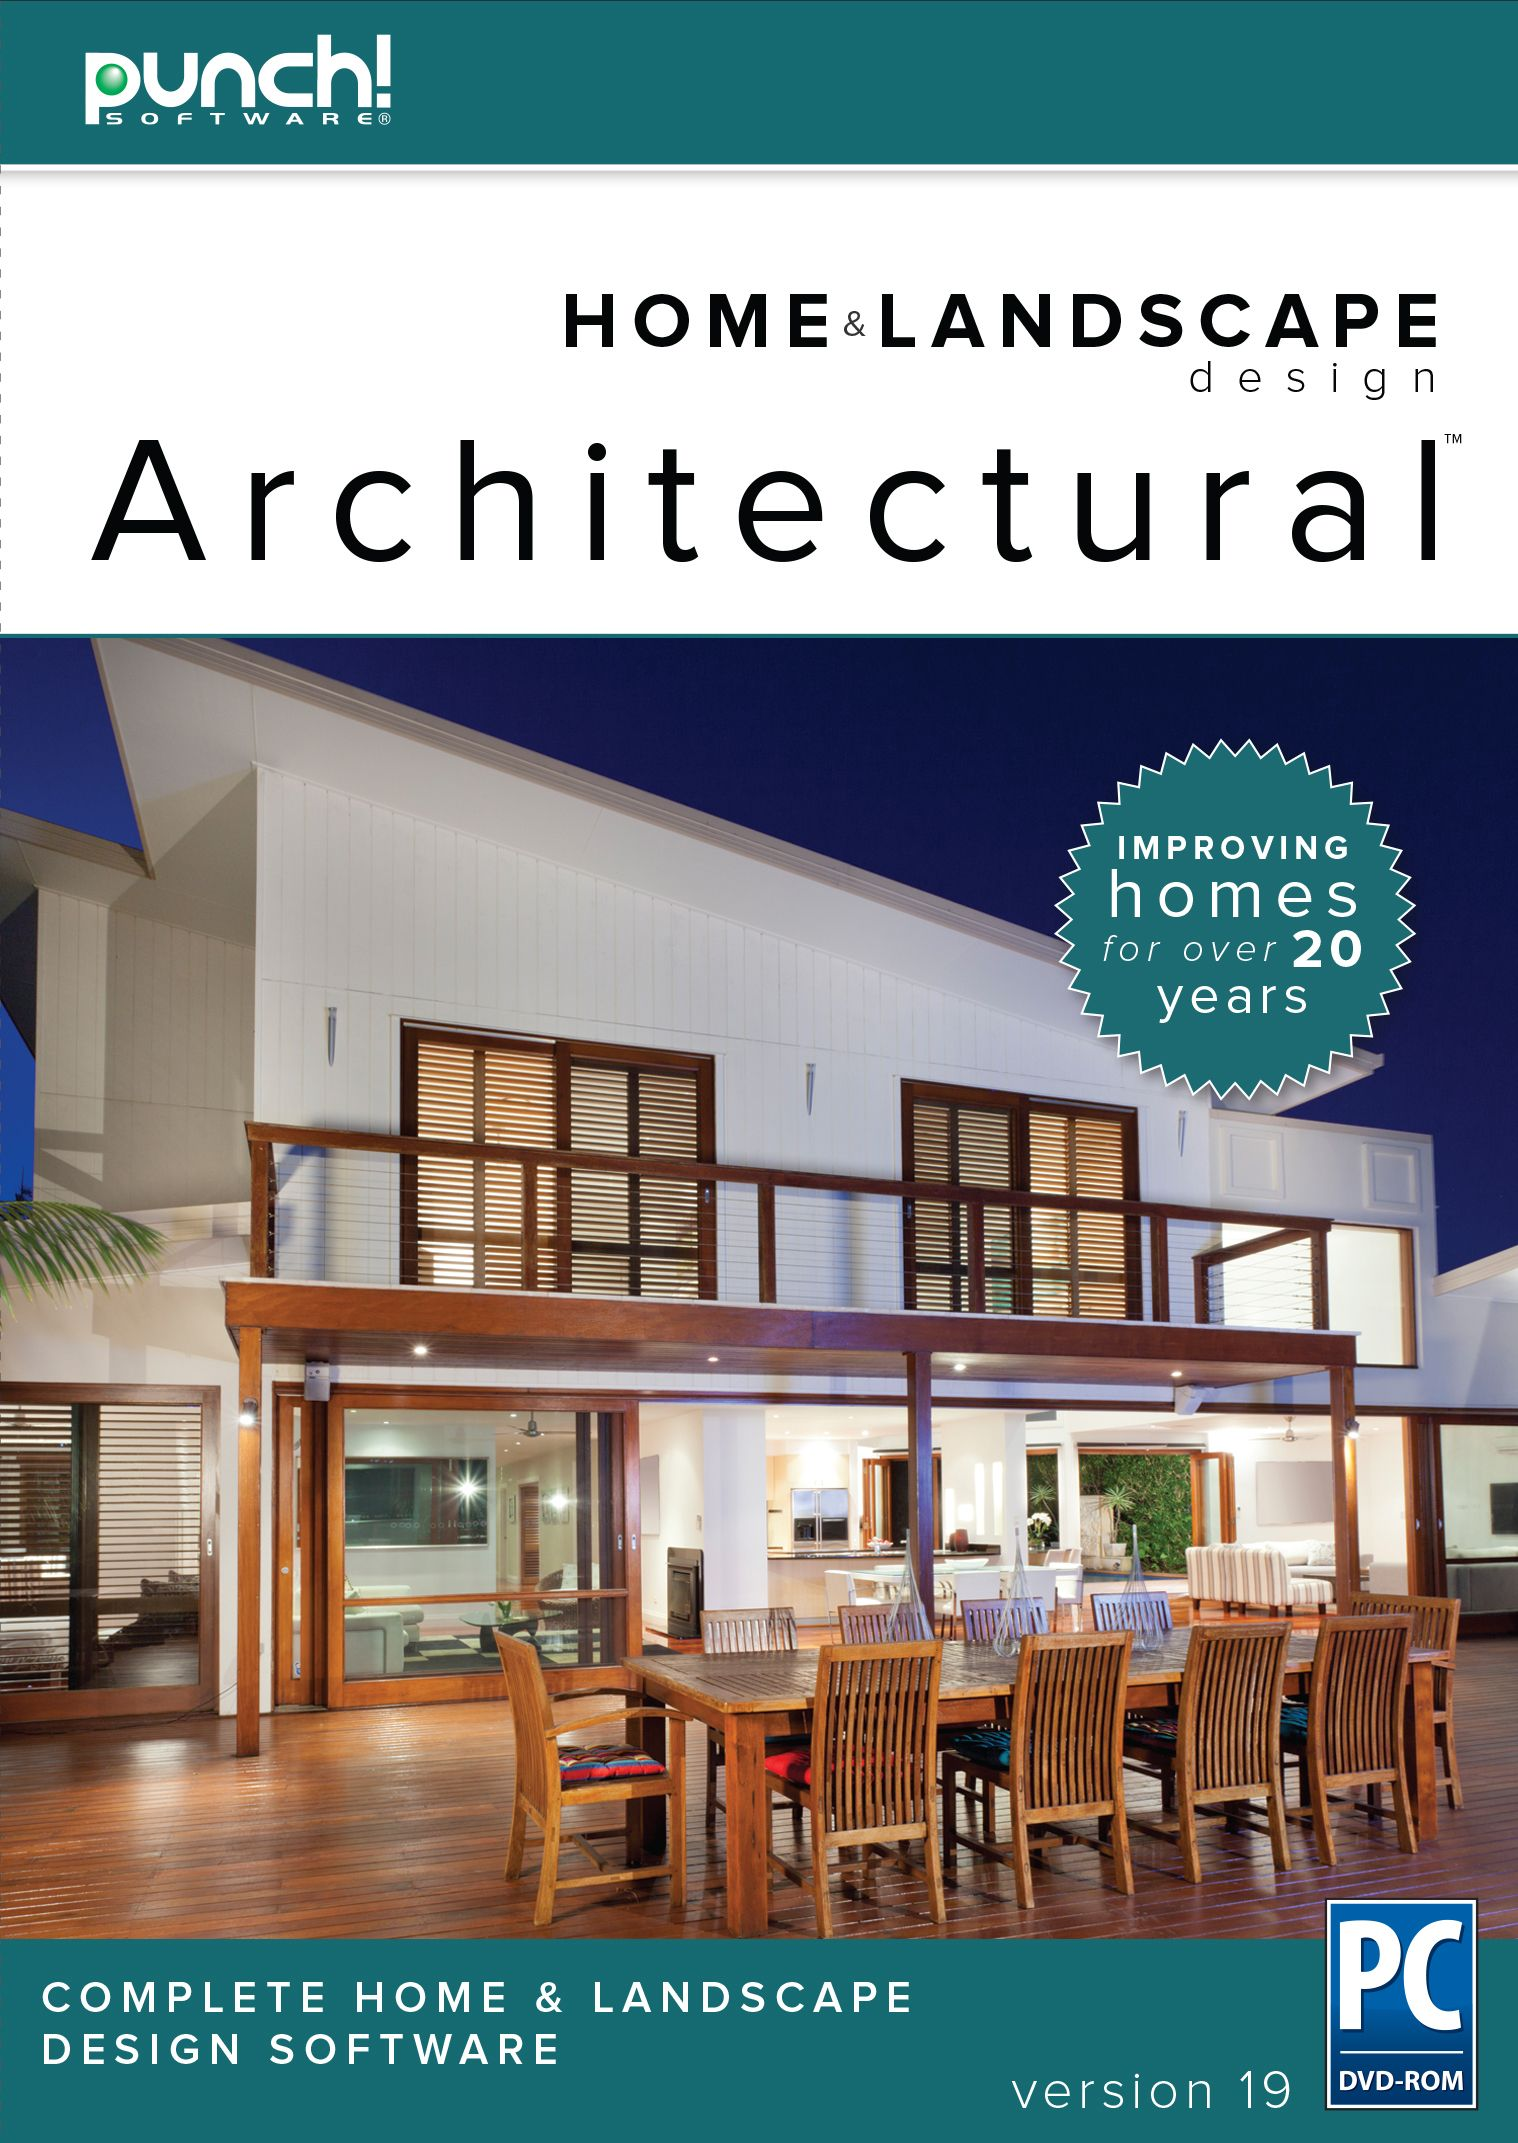 Punch Home Landscape Design Architectural Series V19 Home Design Software For Windows Pc Down Home Design Software Software Design Poster Design Software